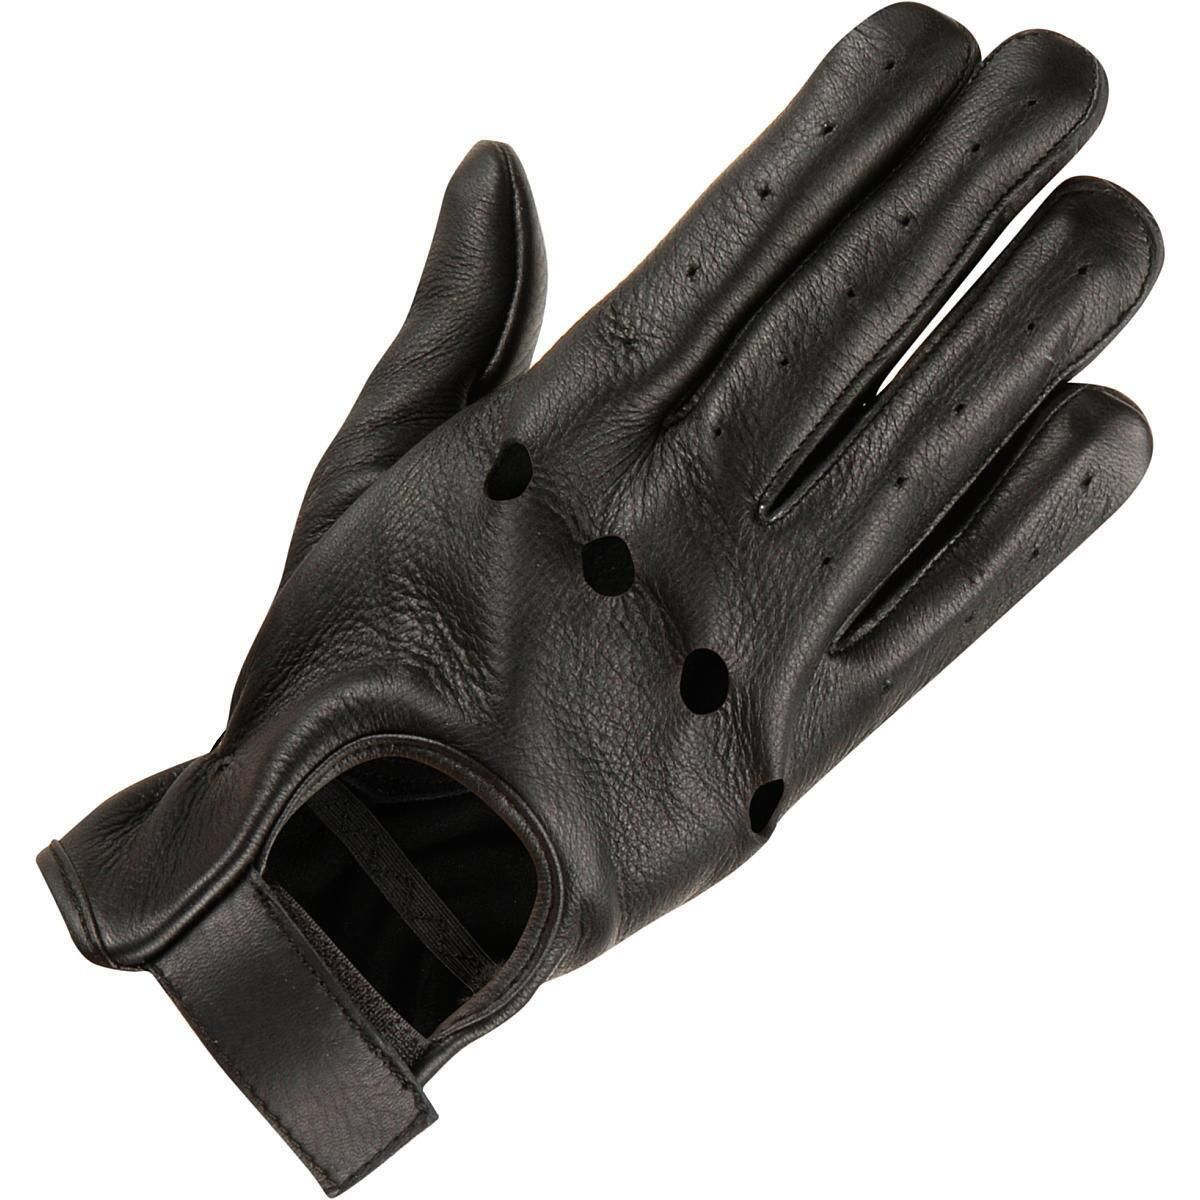 Men s leather driving glove w knuckle holes